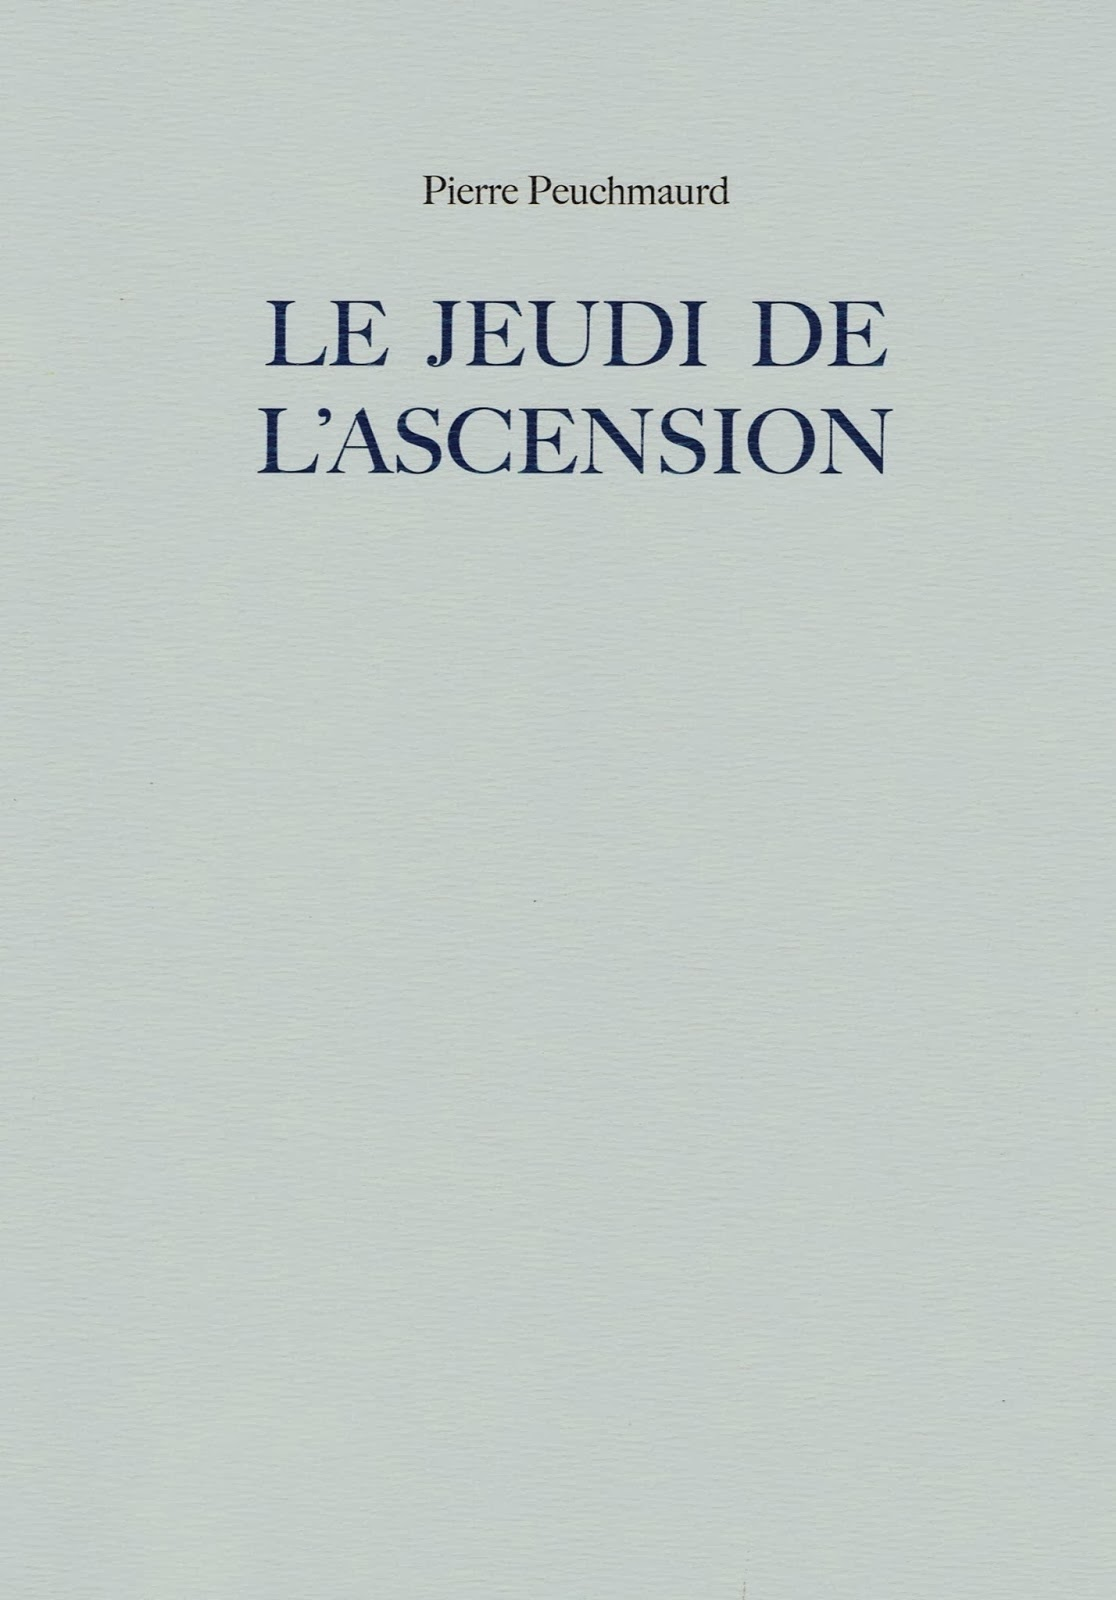 Pierre PEUCHMAURD, LE JEUDI DE L'ASCENSION, Collection de l'umbo